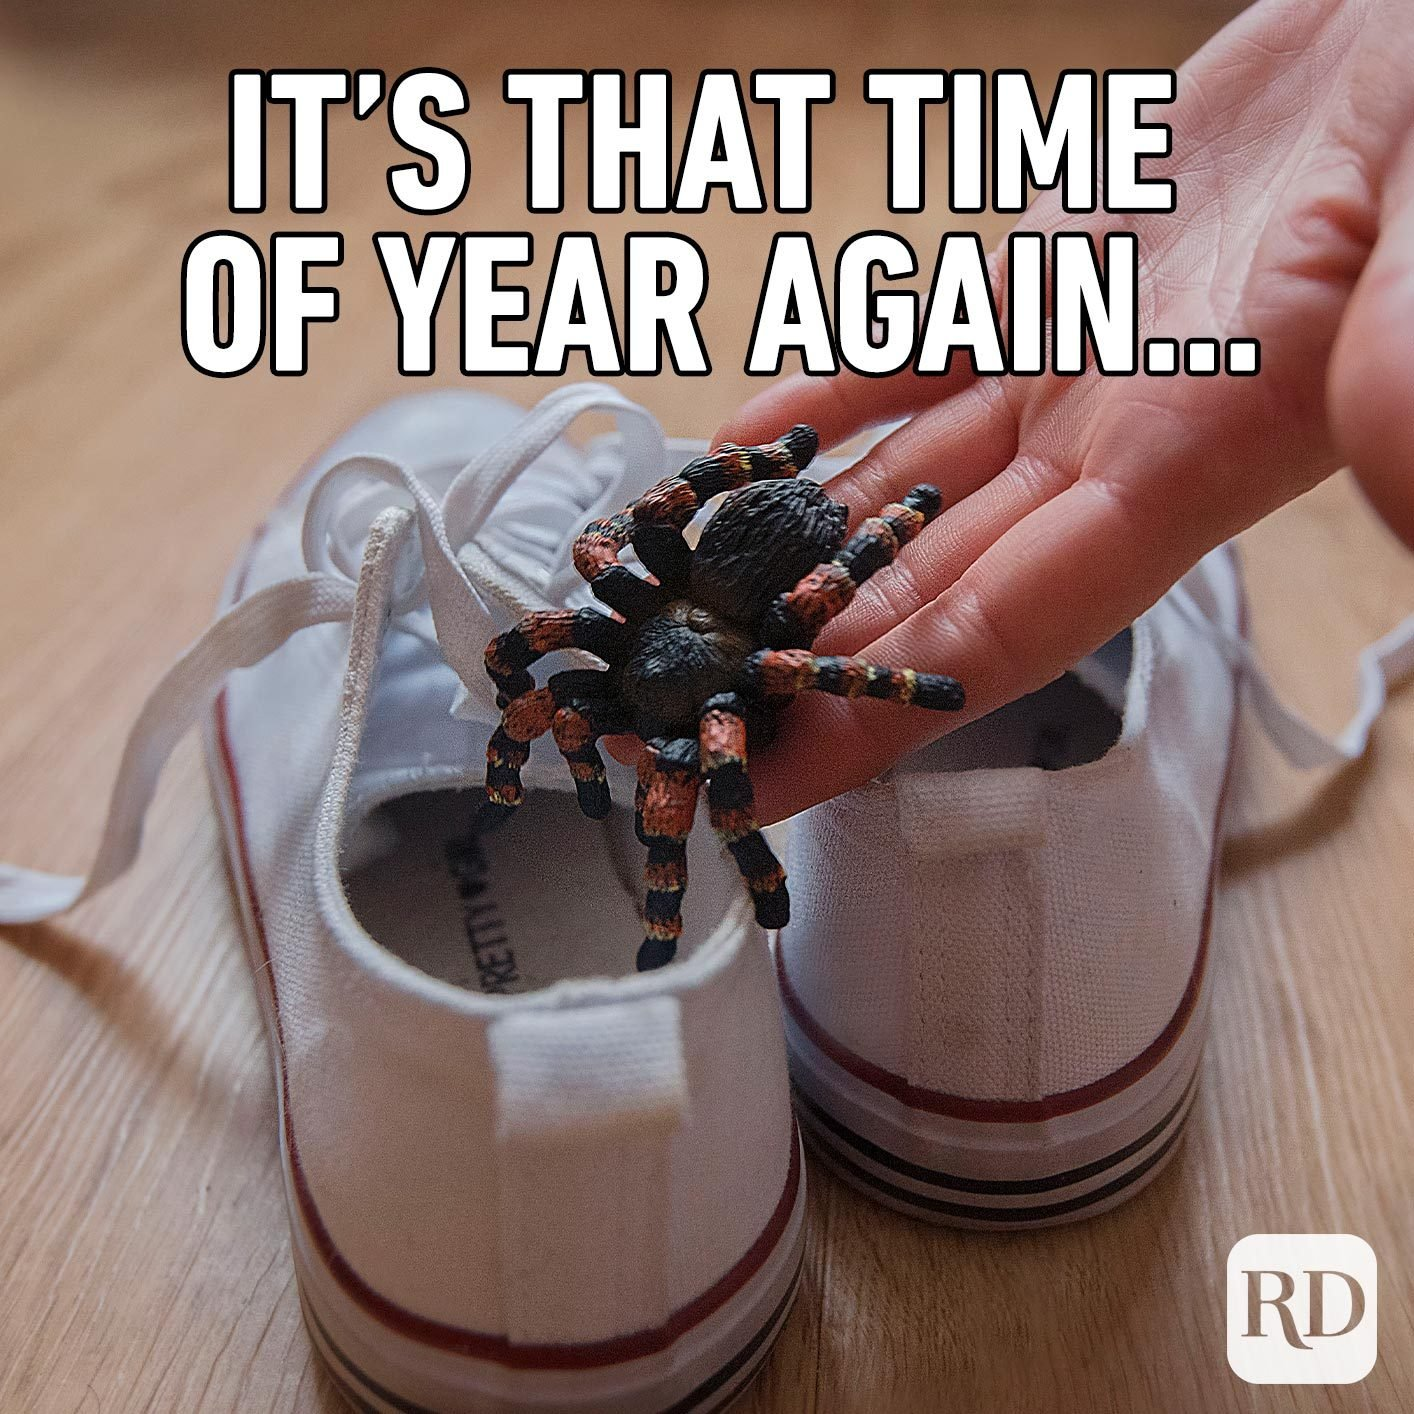 Person slipping a spider into shoes. Meme text: It's that time of year again...